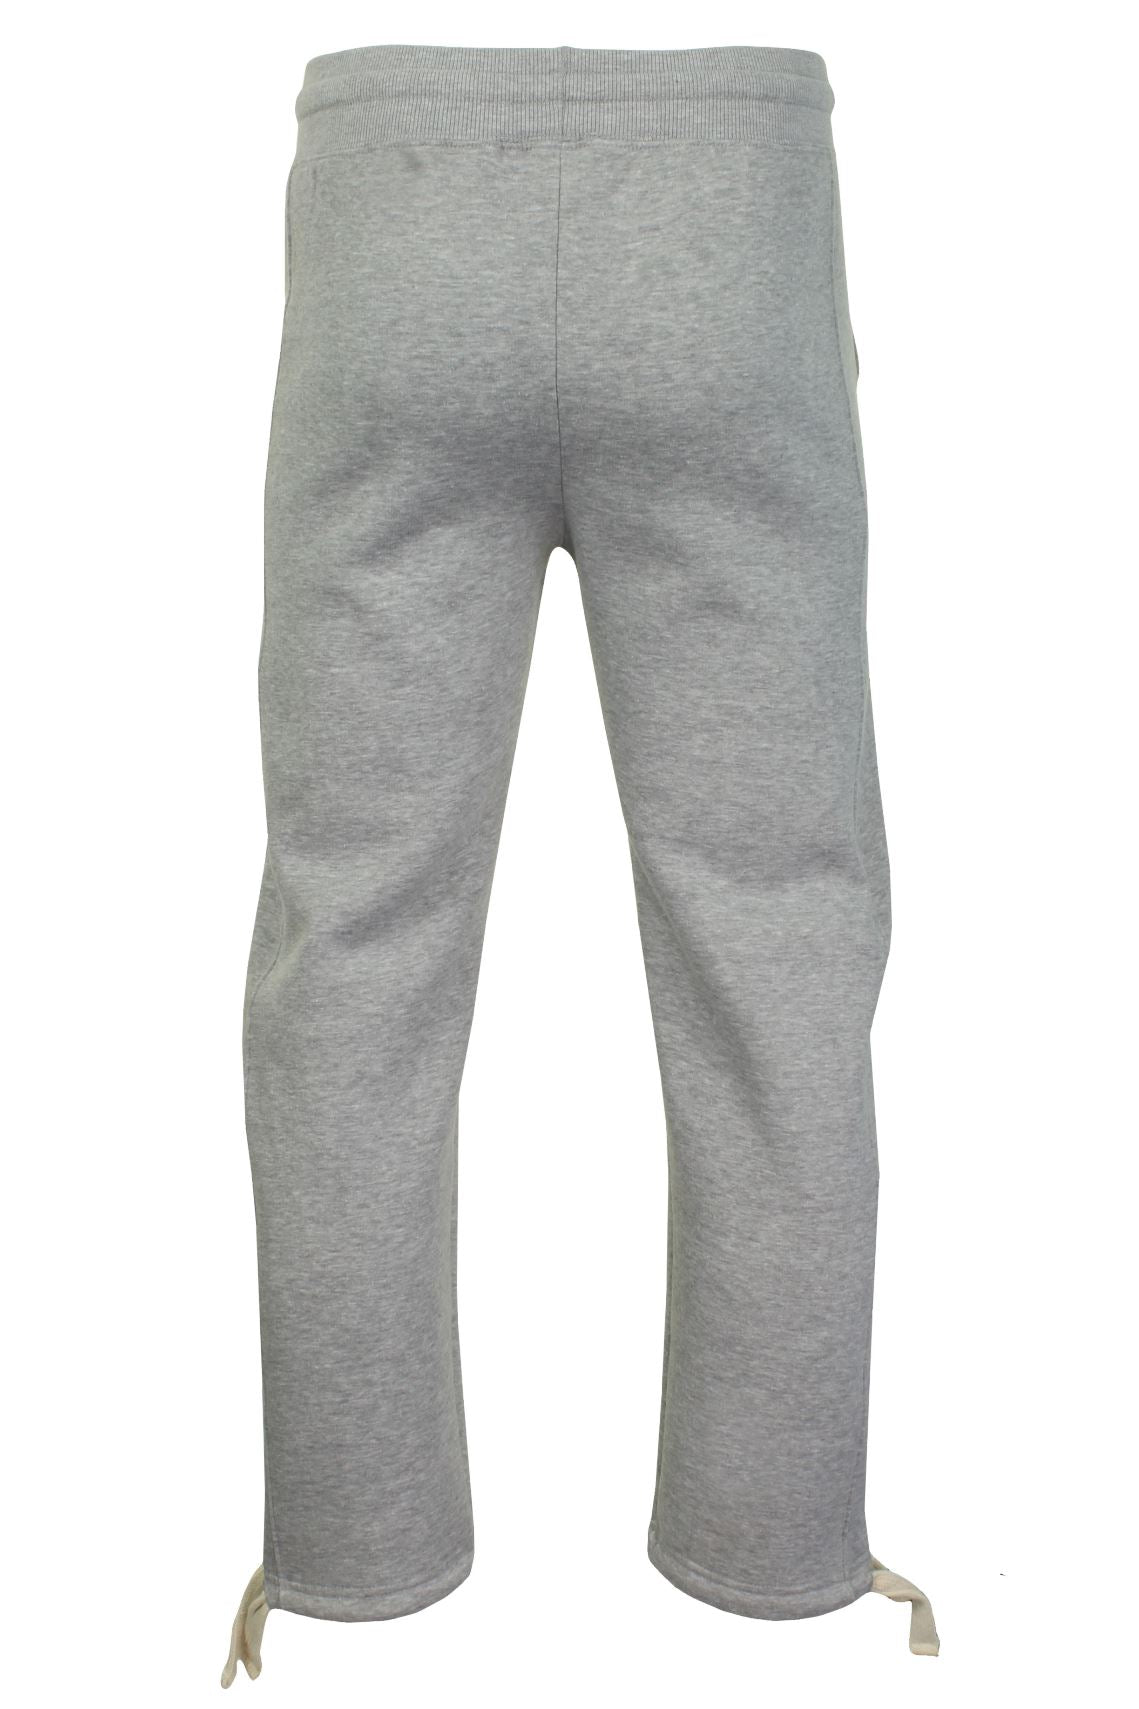 Xact Men's Casual Gym Jogger Lounge Wear, 03, Xjg-0005, #colour_Light Grey